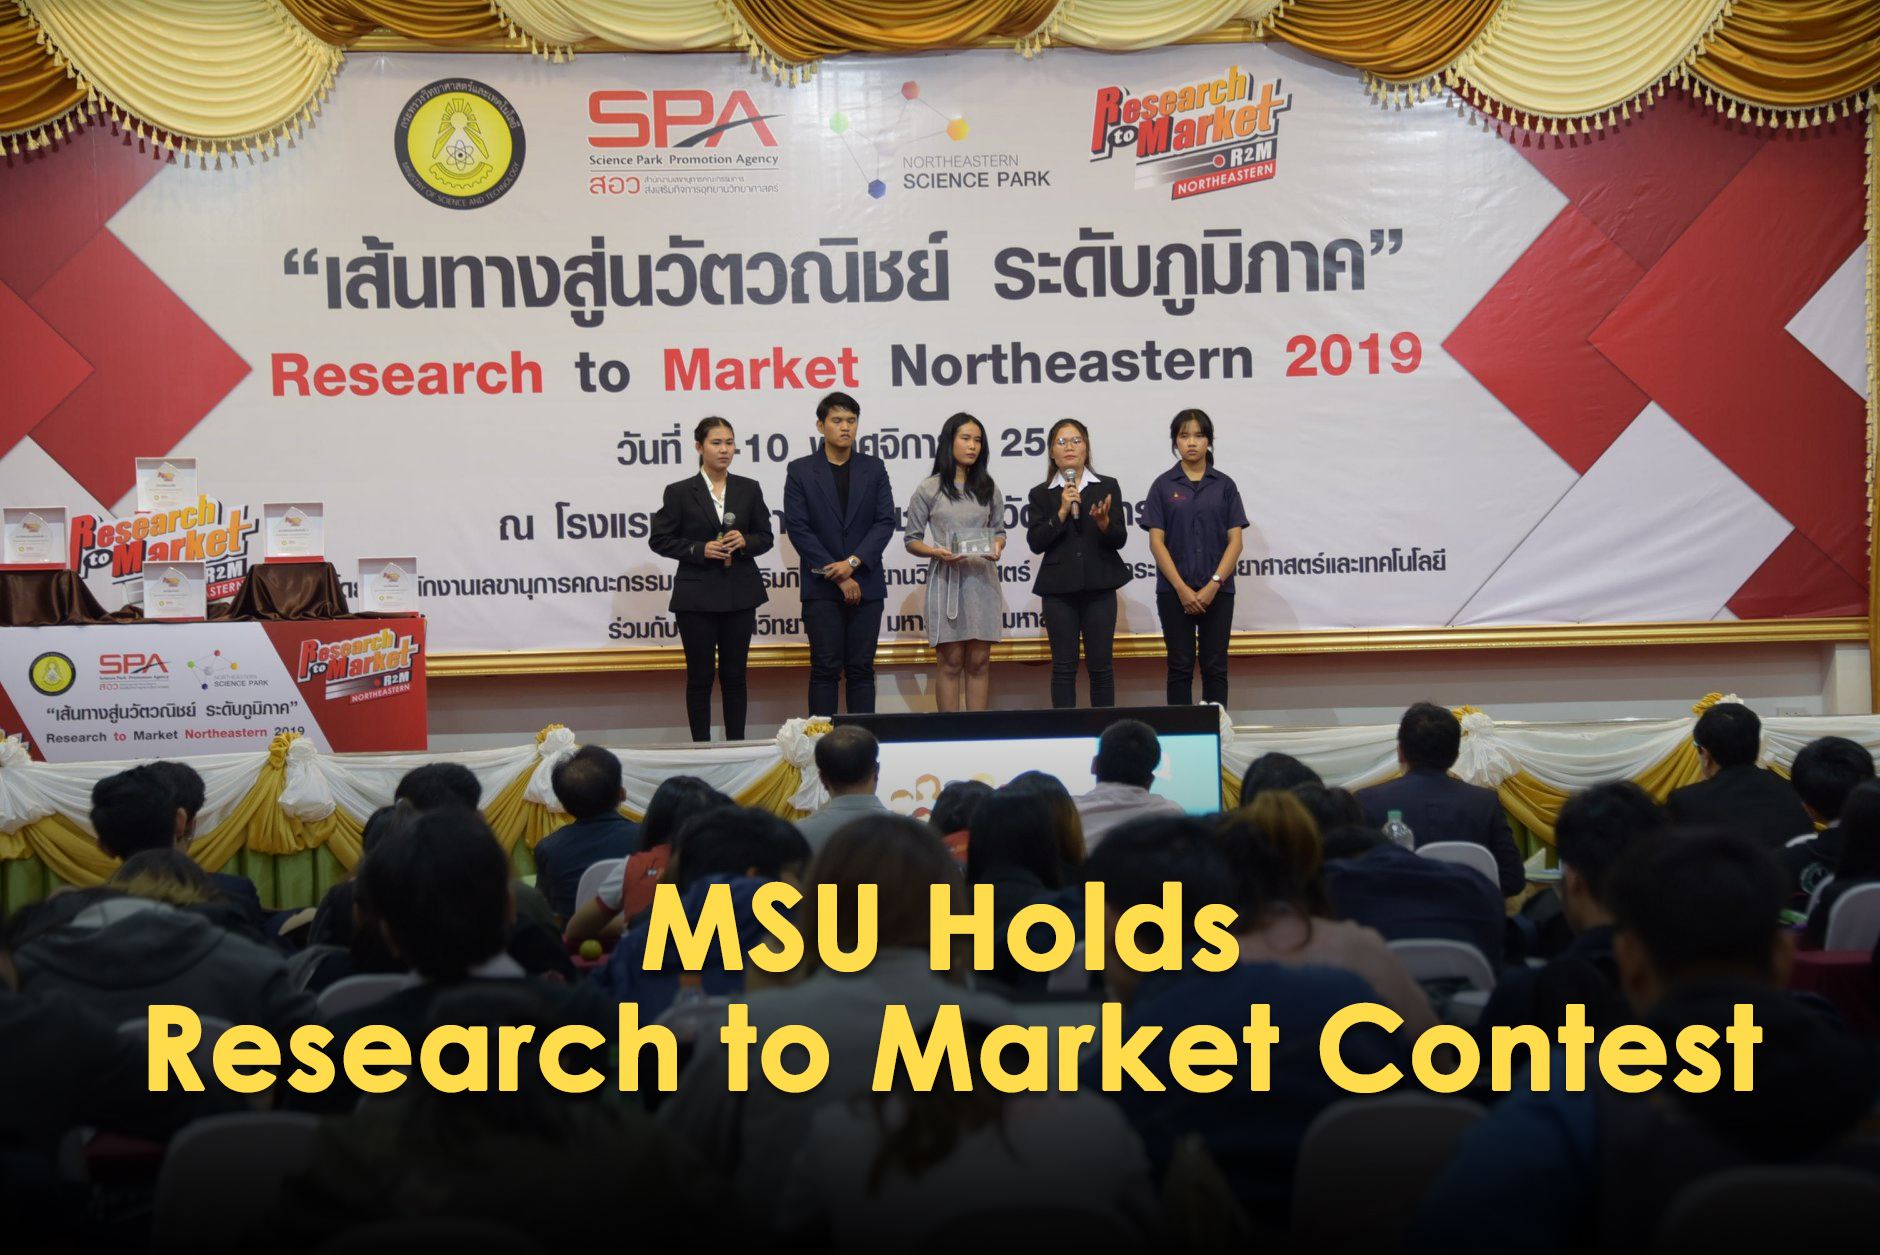 MSU Holds Research to Market Contest